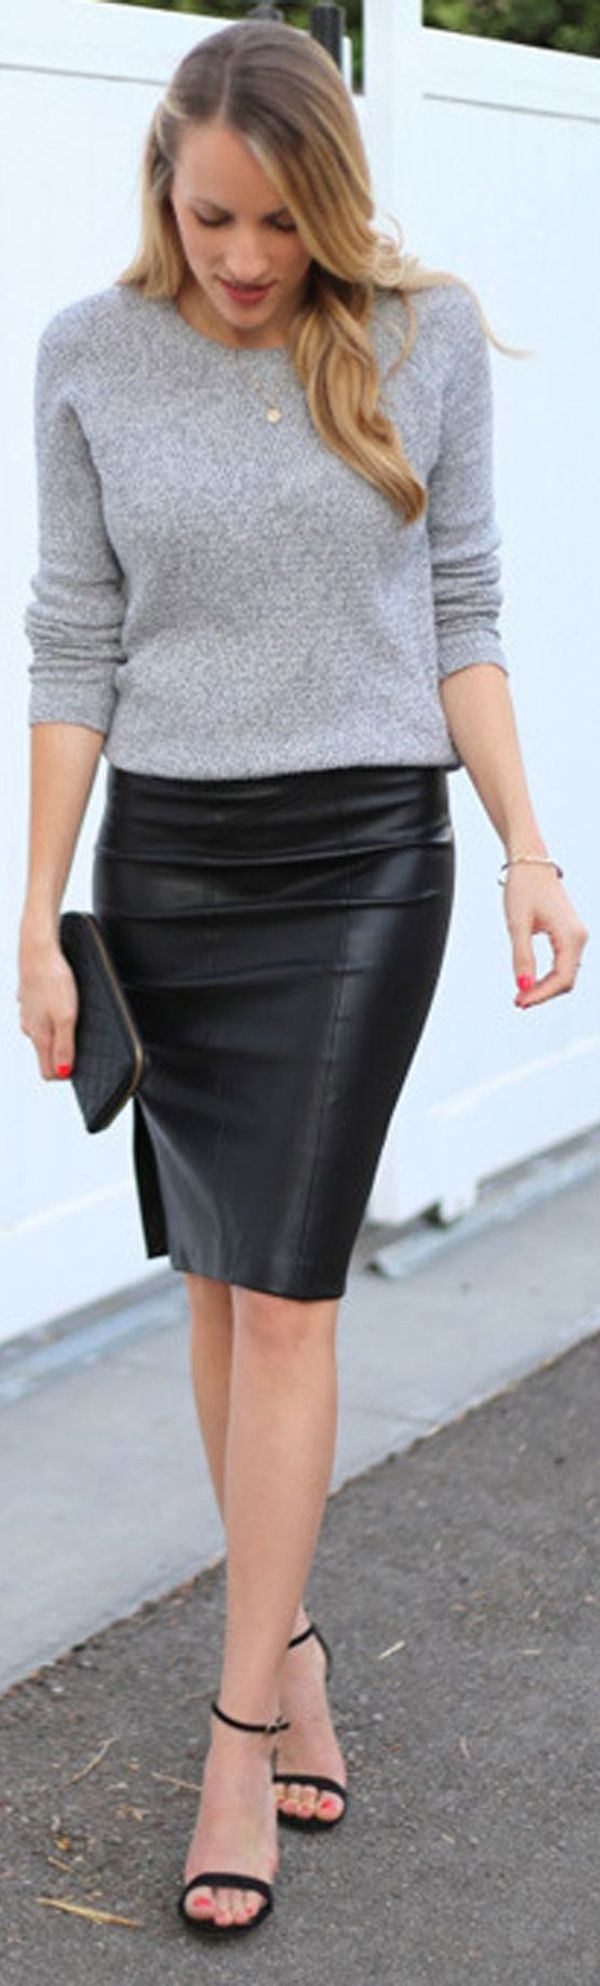 25 best ideas about leather skirt on